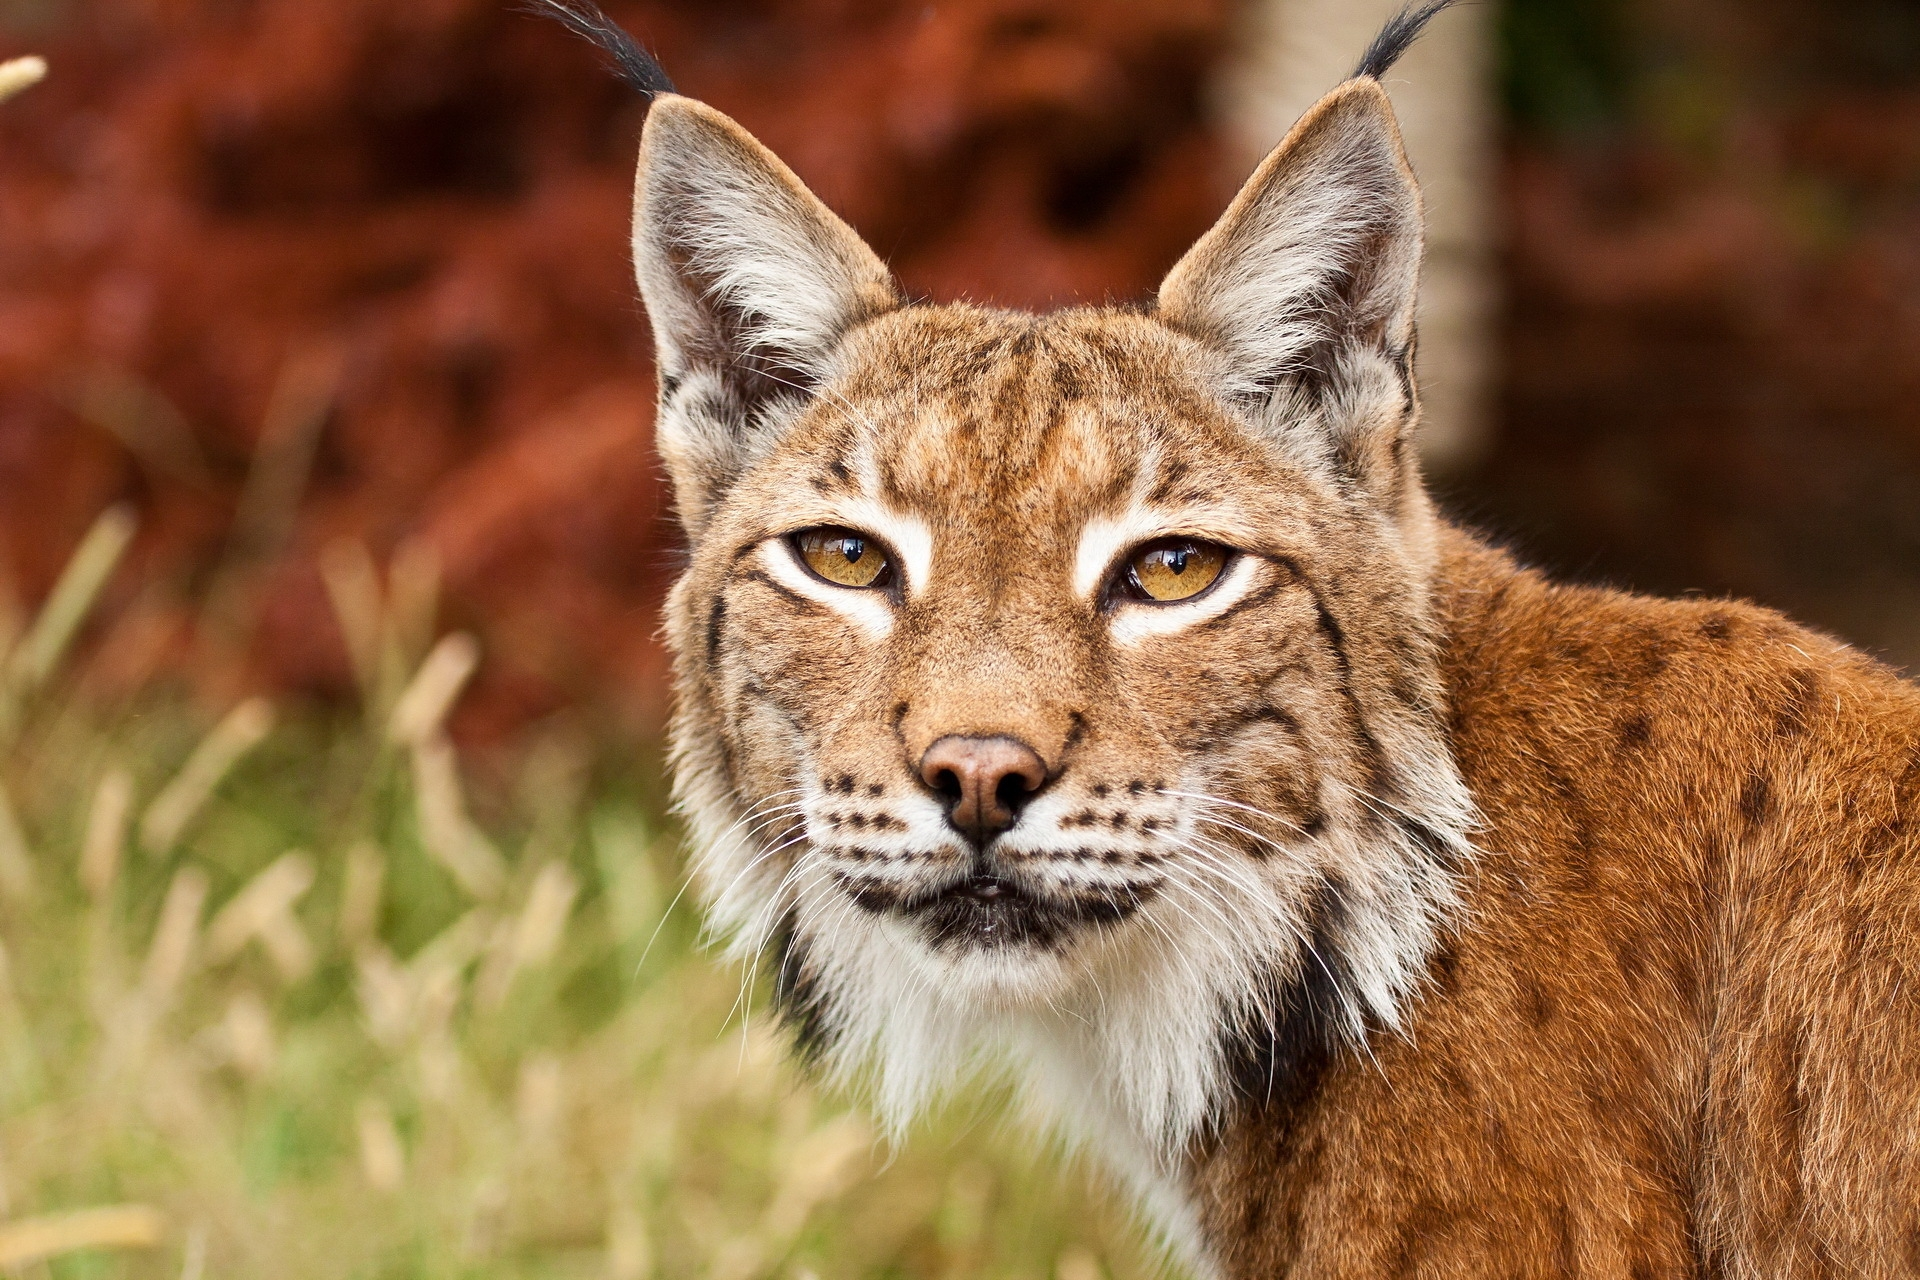 139824 download wallpaper Animals, Iris, Grass, Muzzle, Predator screensavers and pictures for free